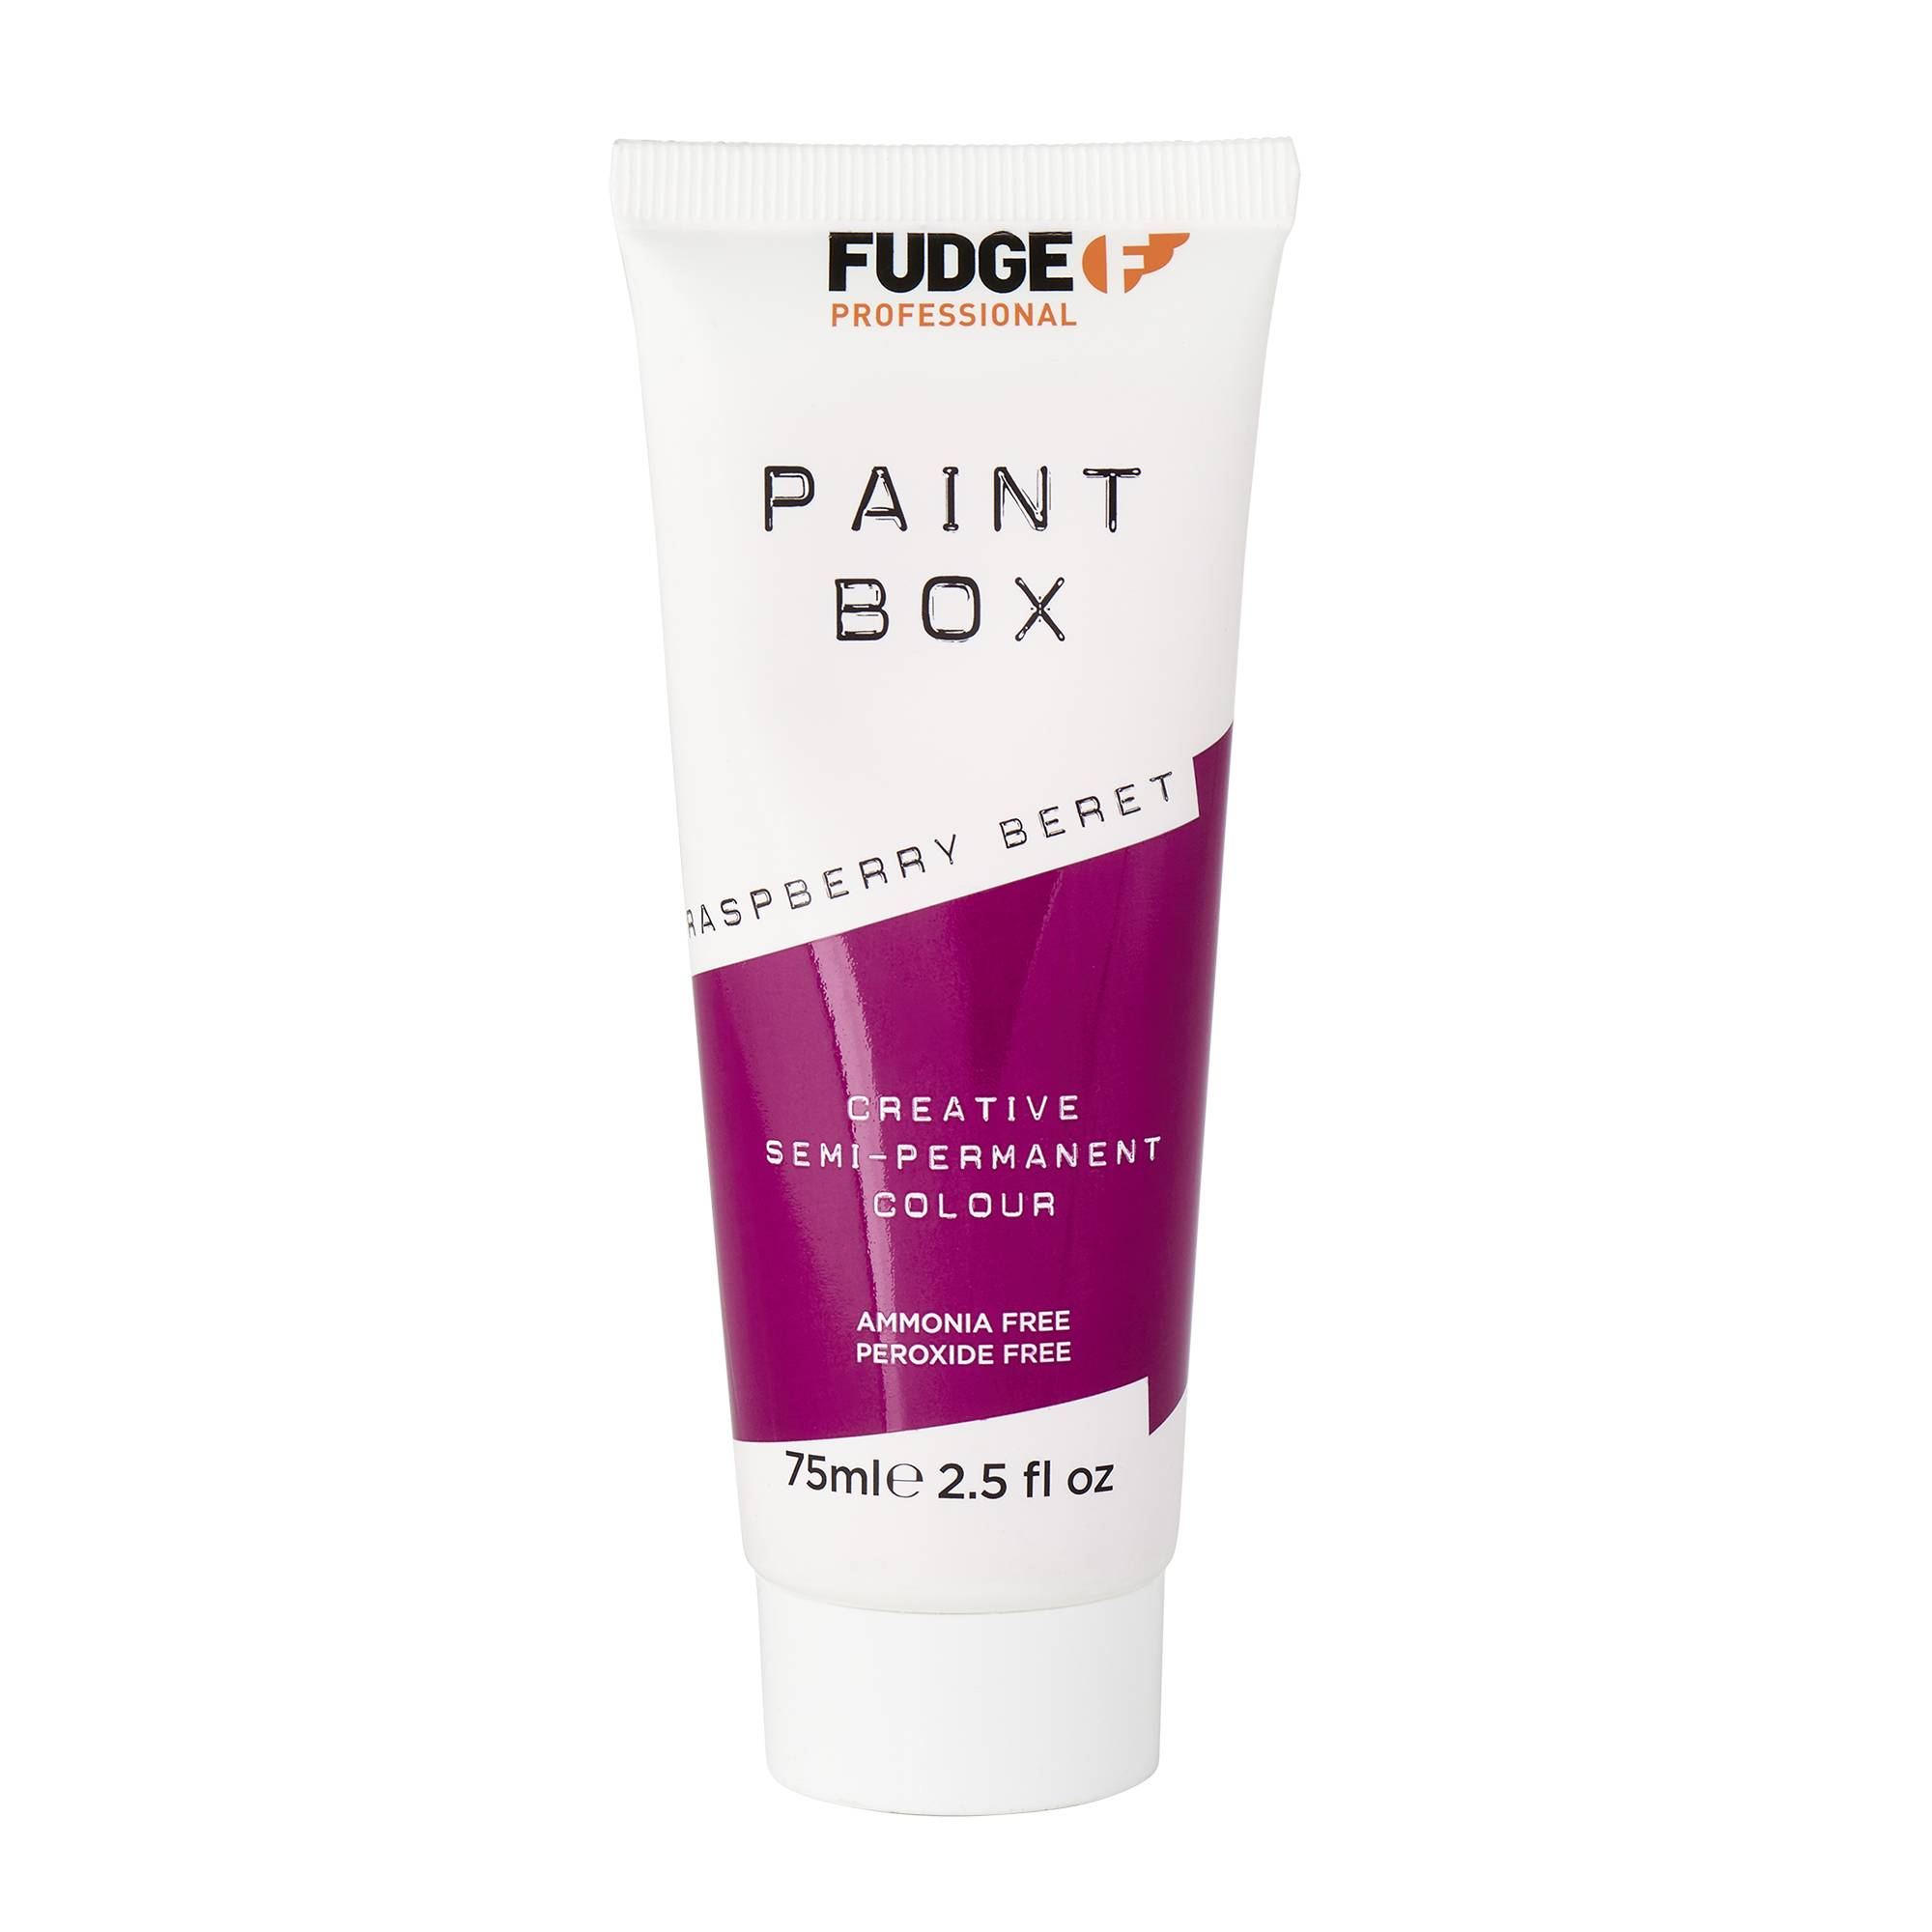 Fudge Professional Coloration semipermanente Creative Paint Box Raspberry Beret 75ml